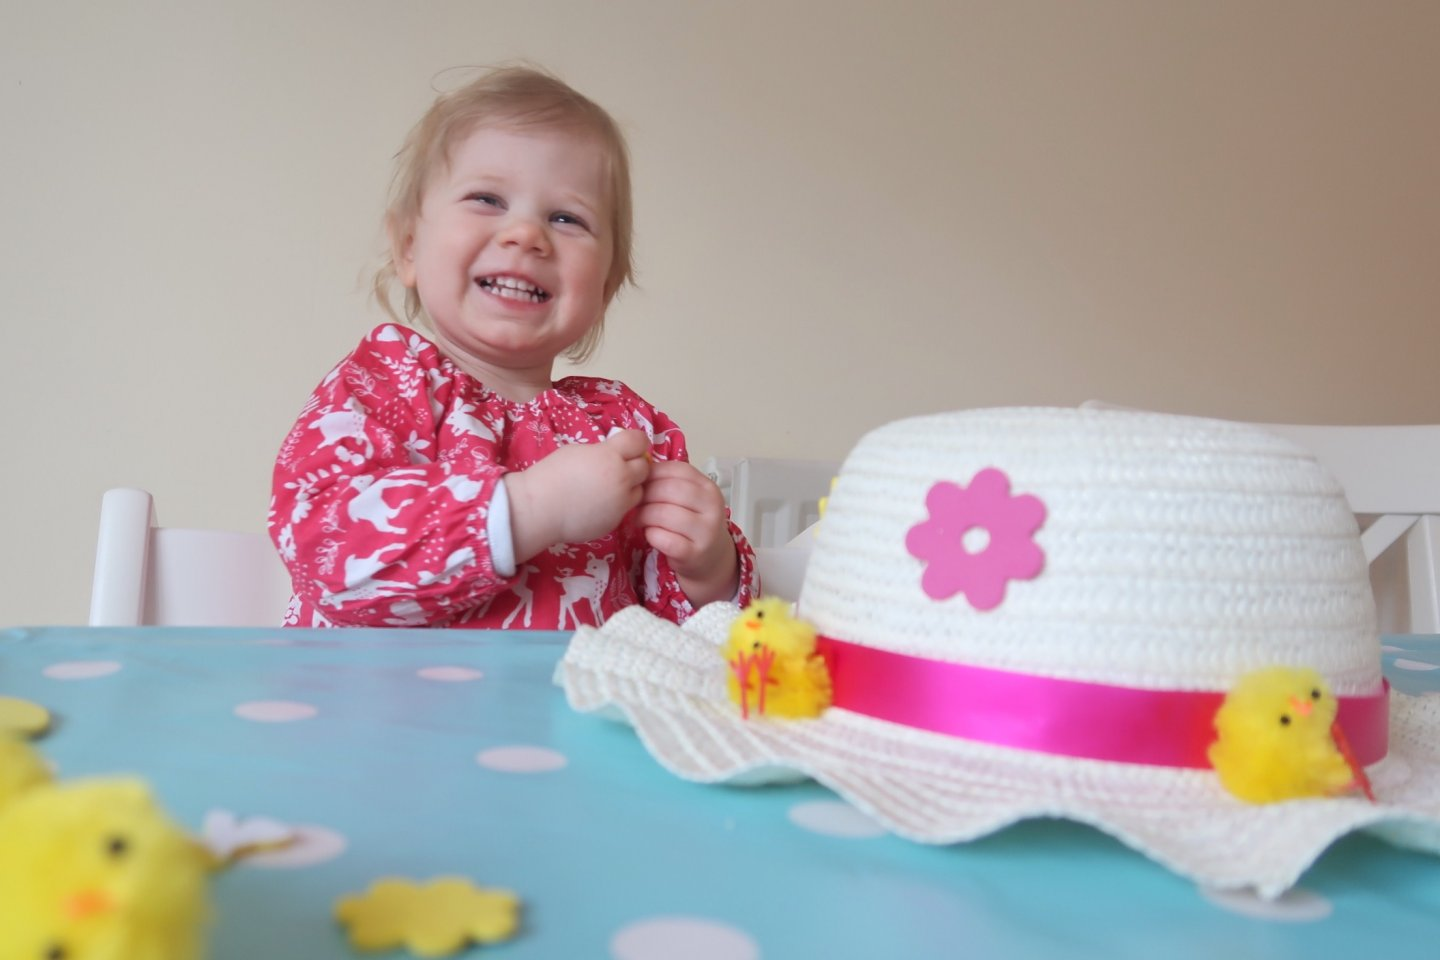 Easter bonnet craft activity with foam stickers